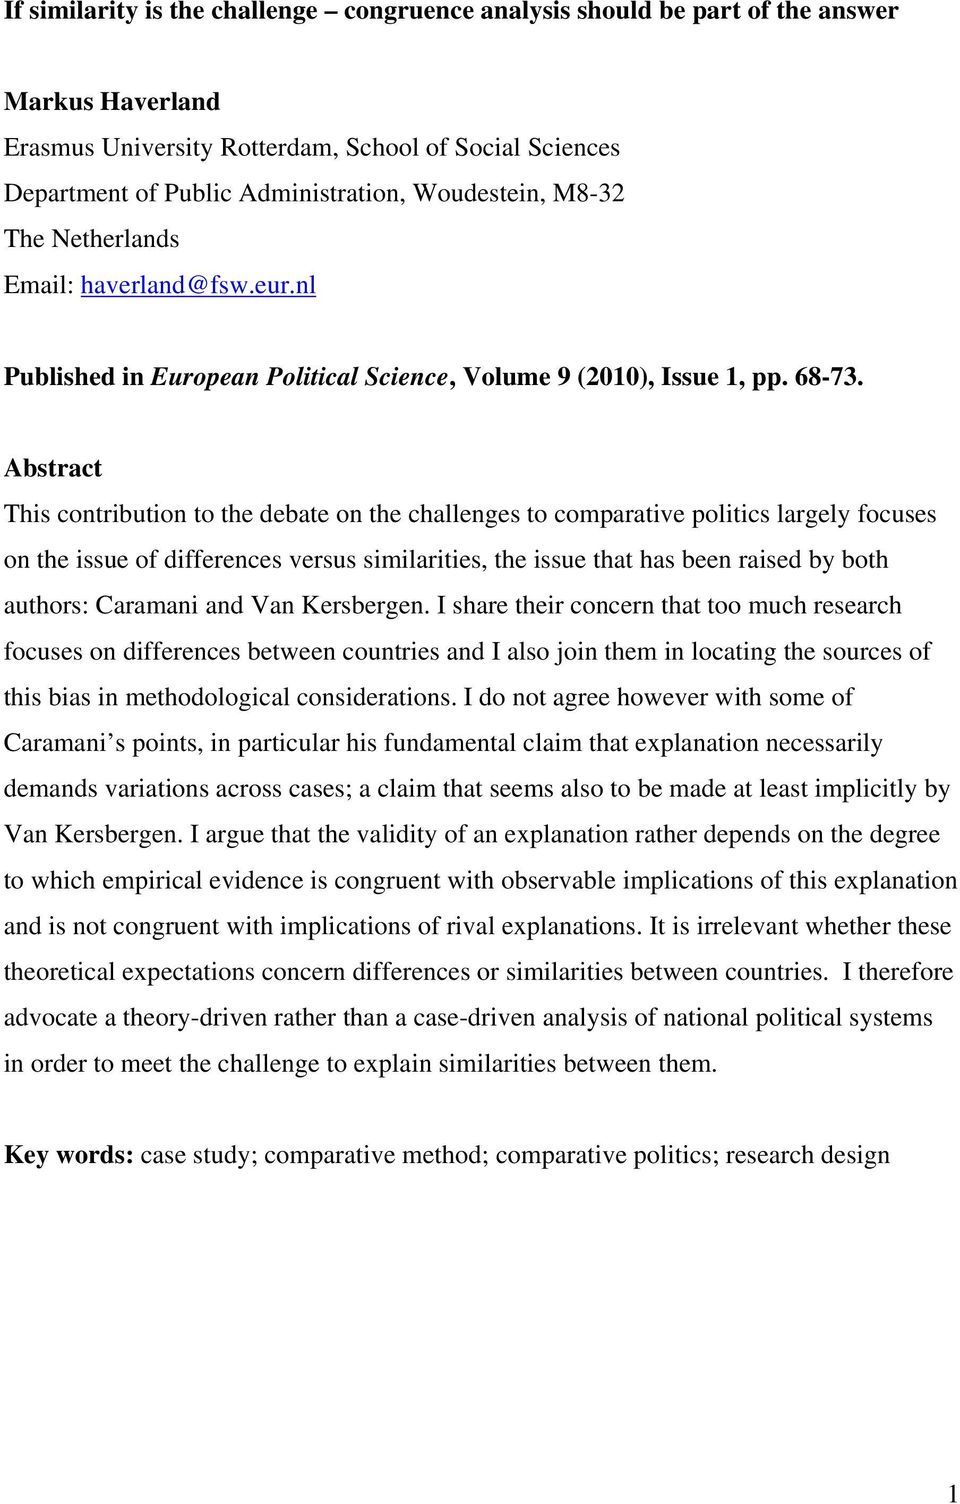 Abstract This contribution to the debate on the challenges to comparative politics largely focuses on the issue of differences versus similarities, the issue that has been raised by both authors: